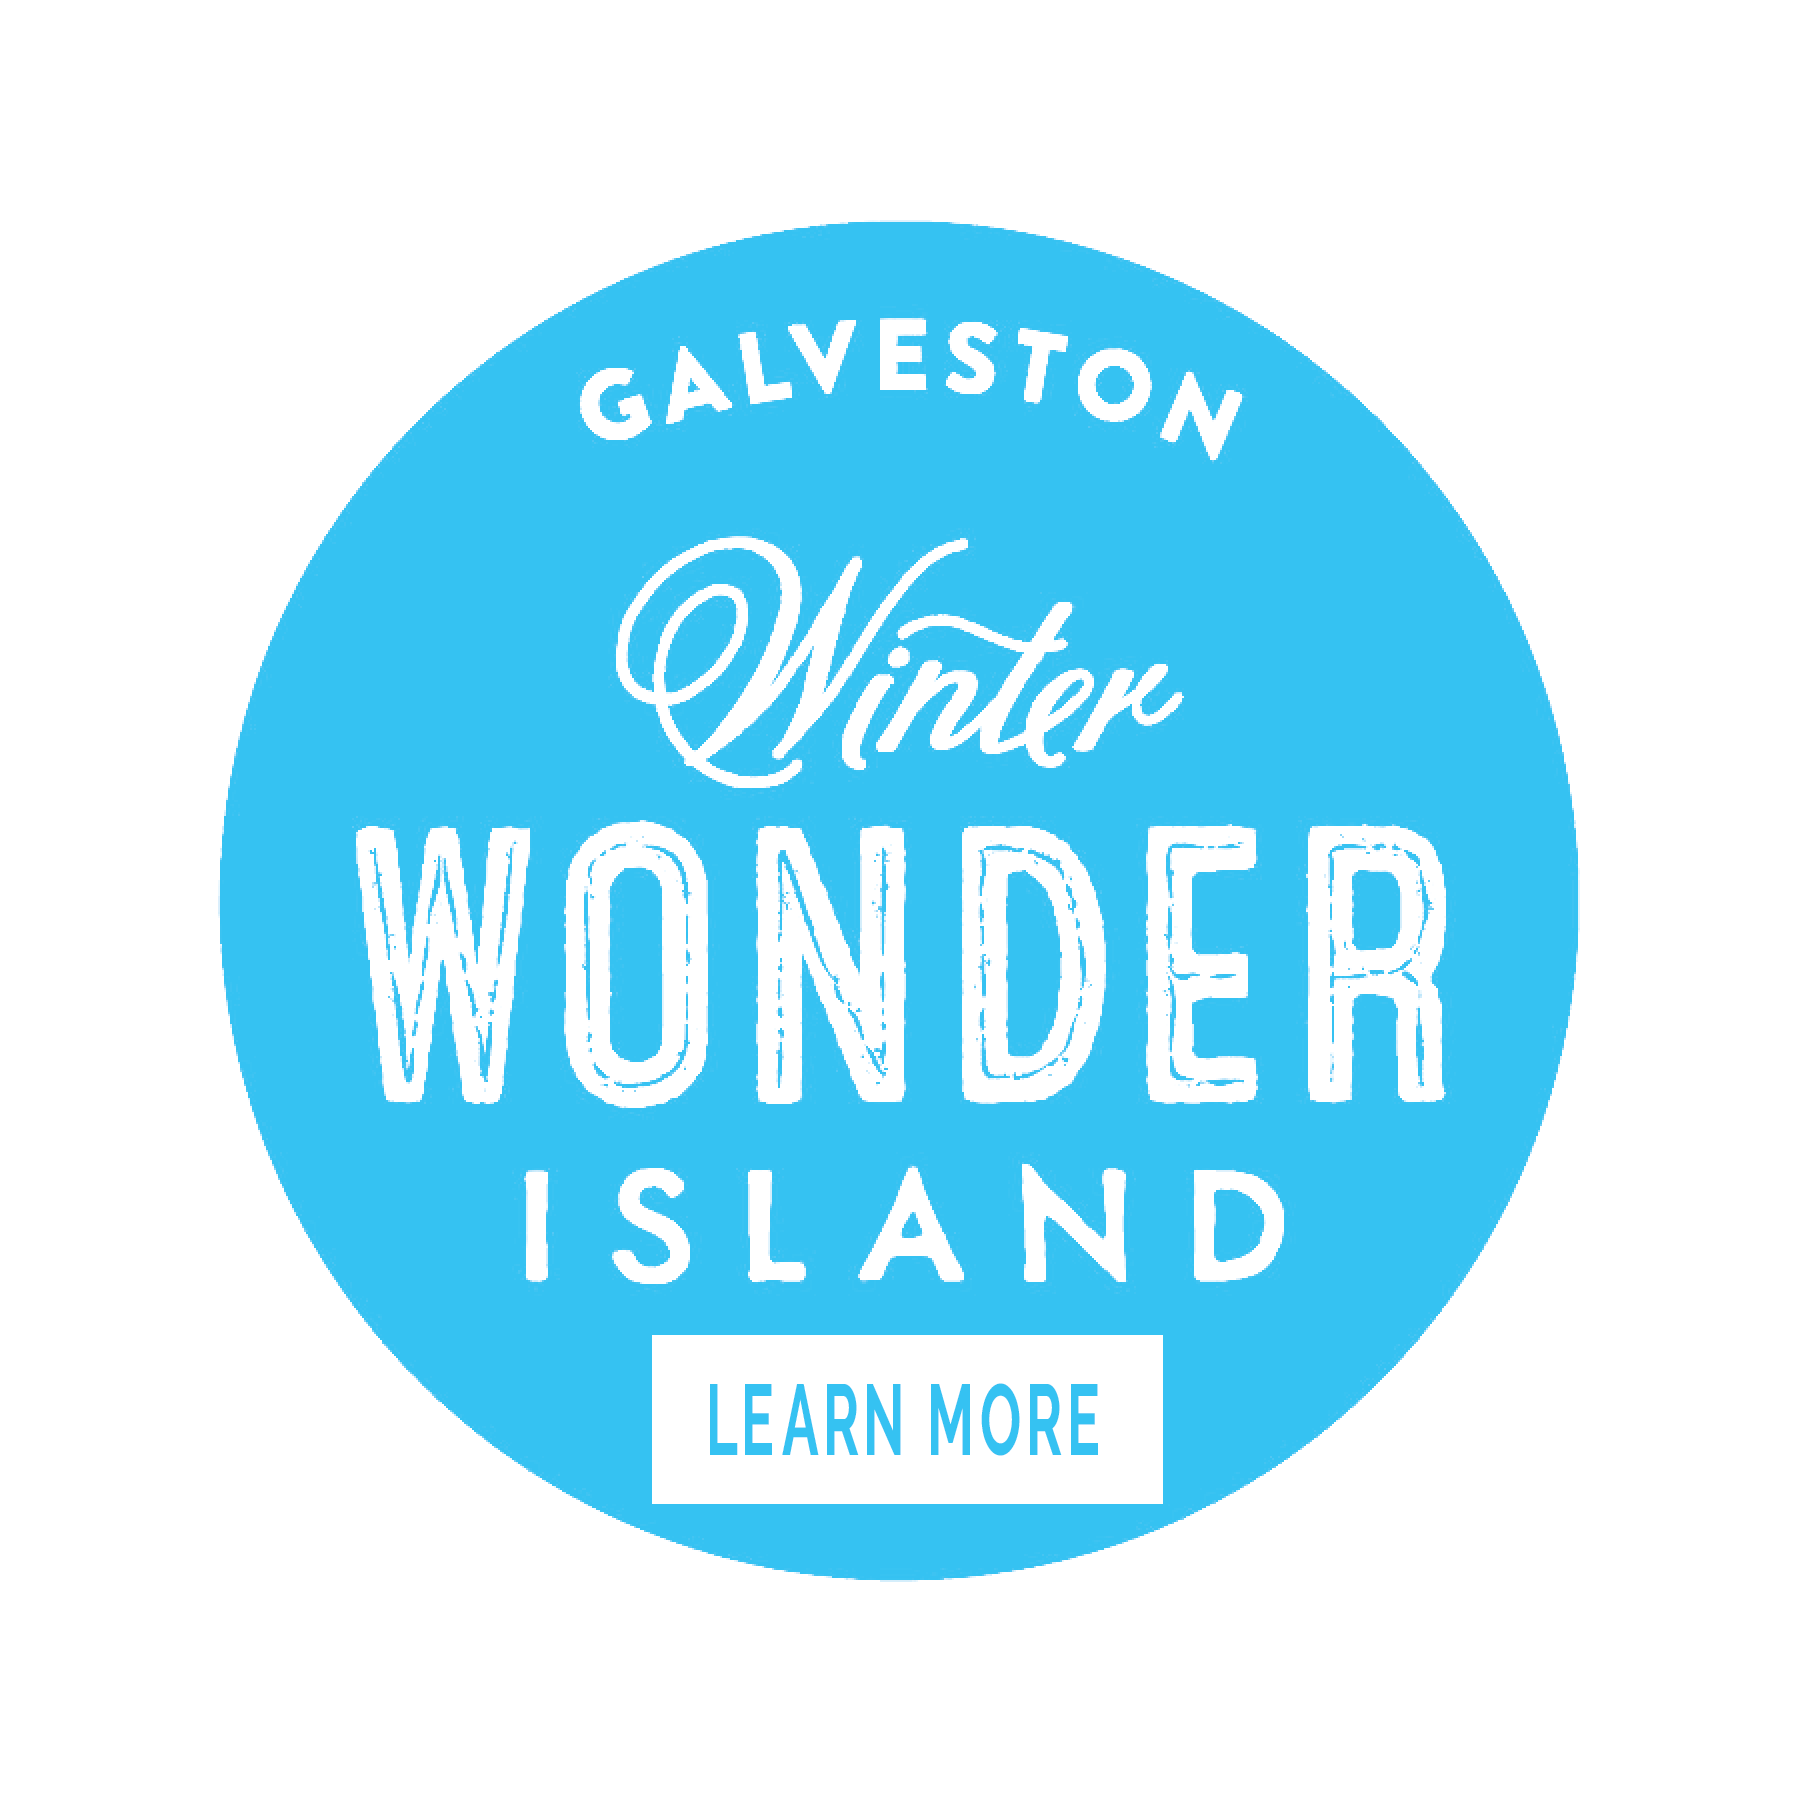 Galveston Winter Wonder Island